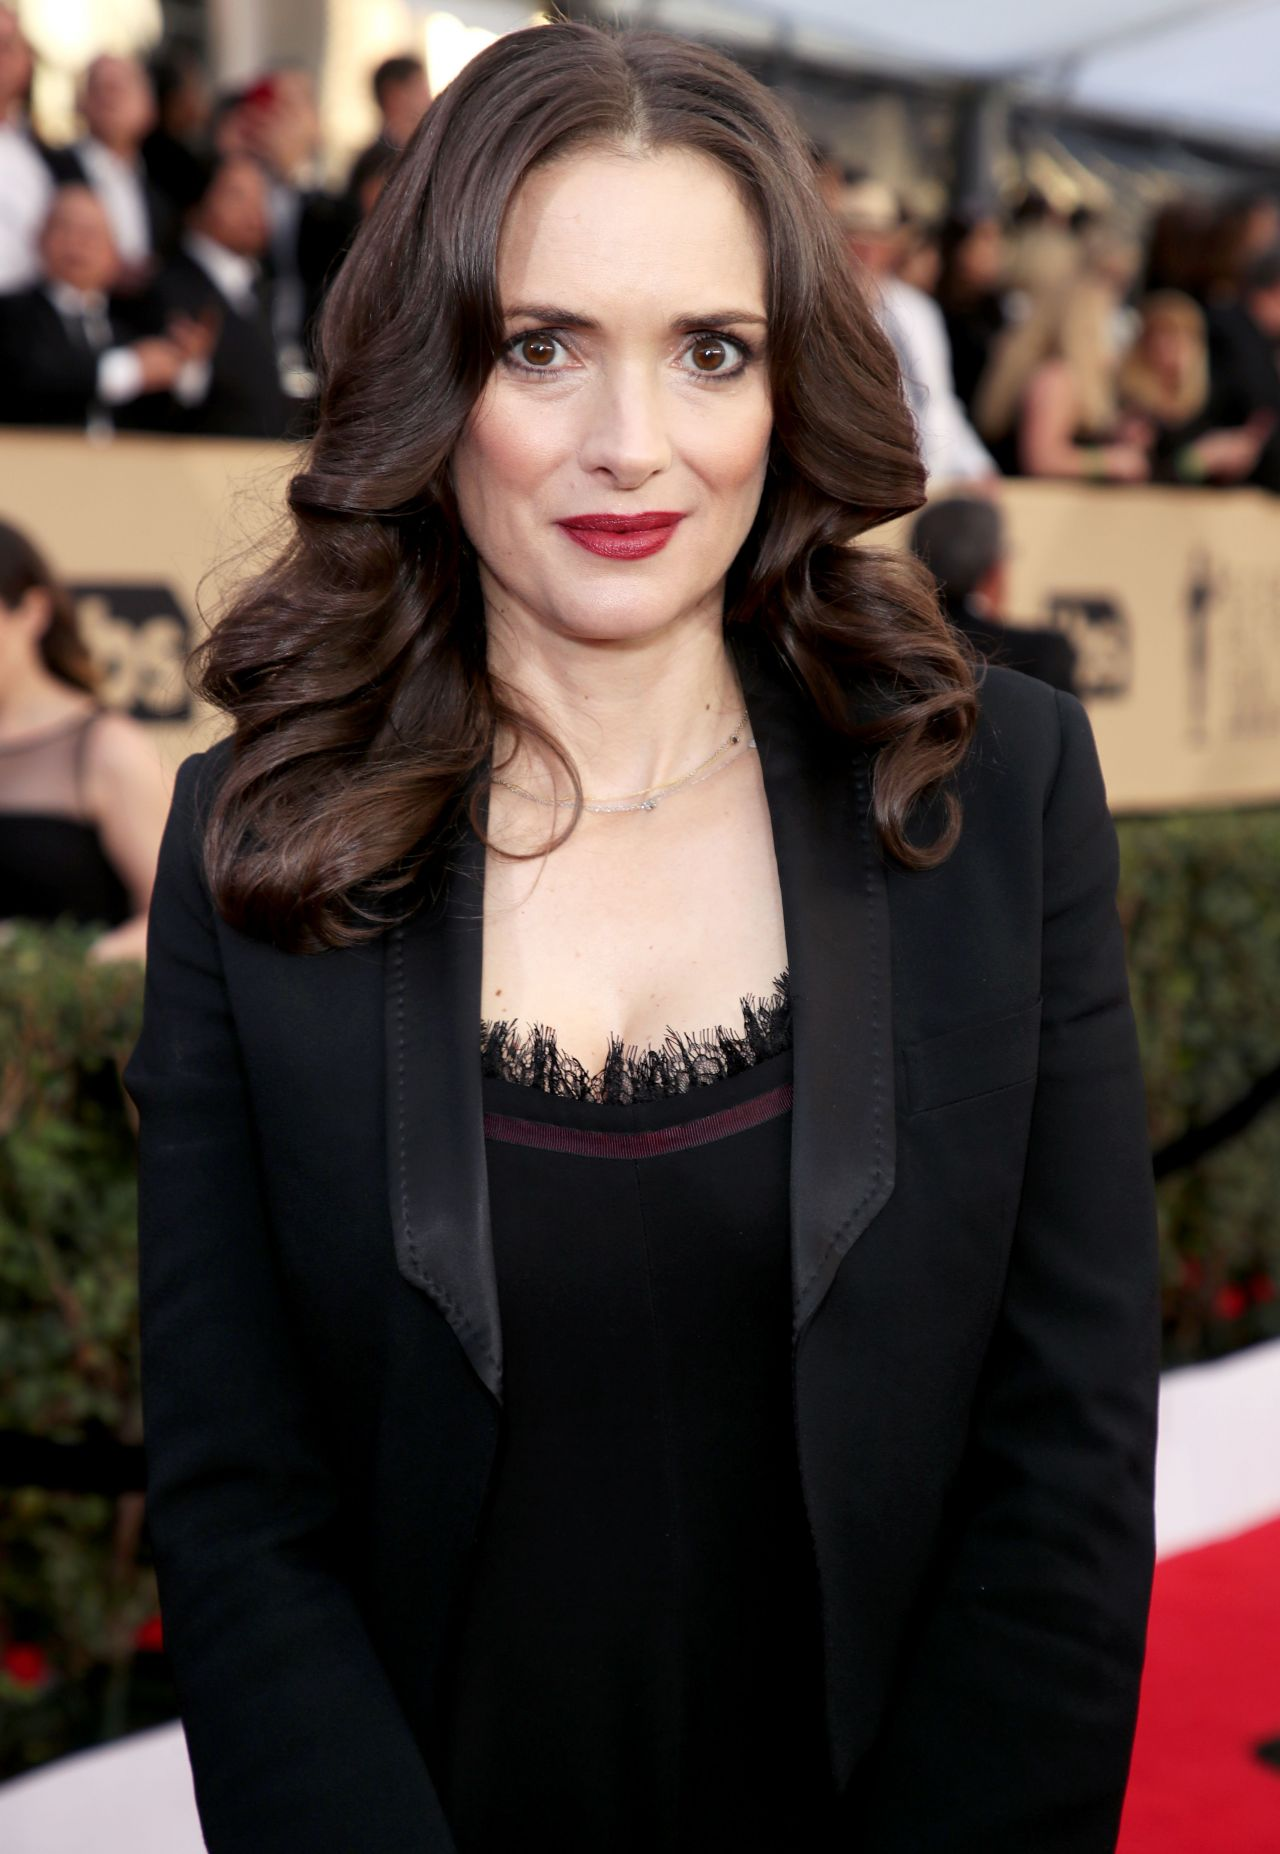 winona ryder - photo #27